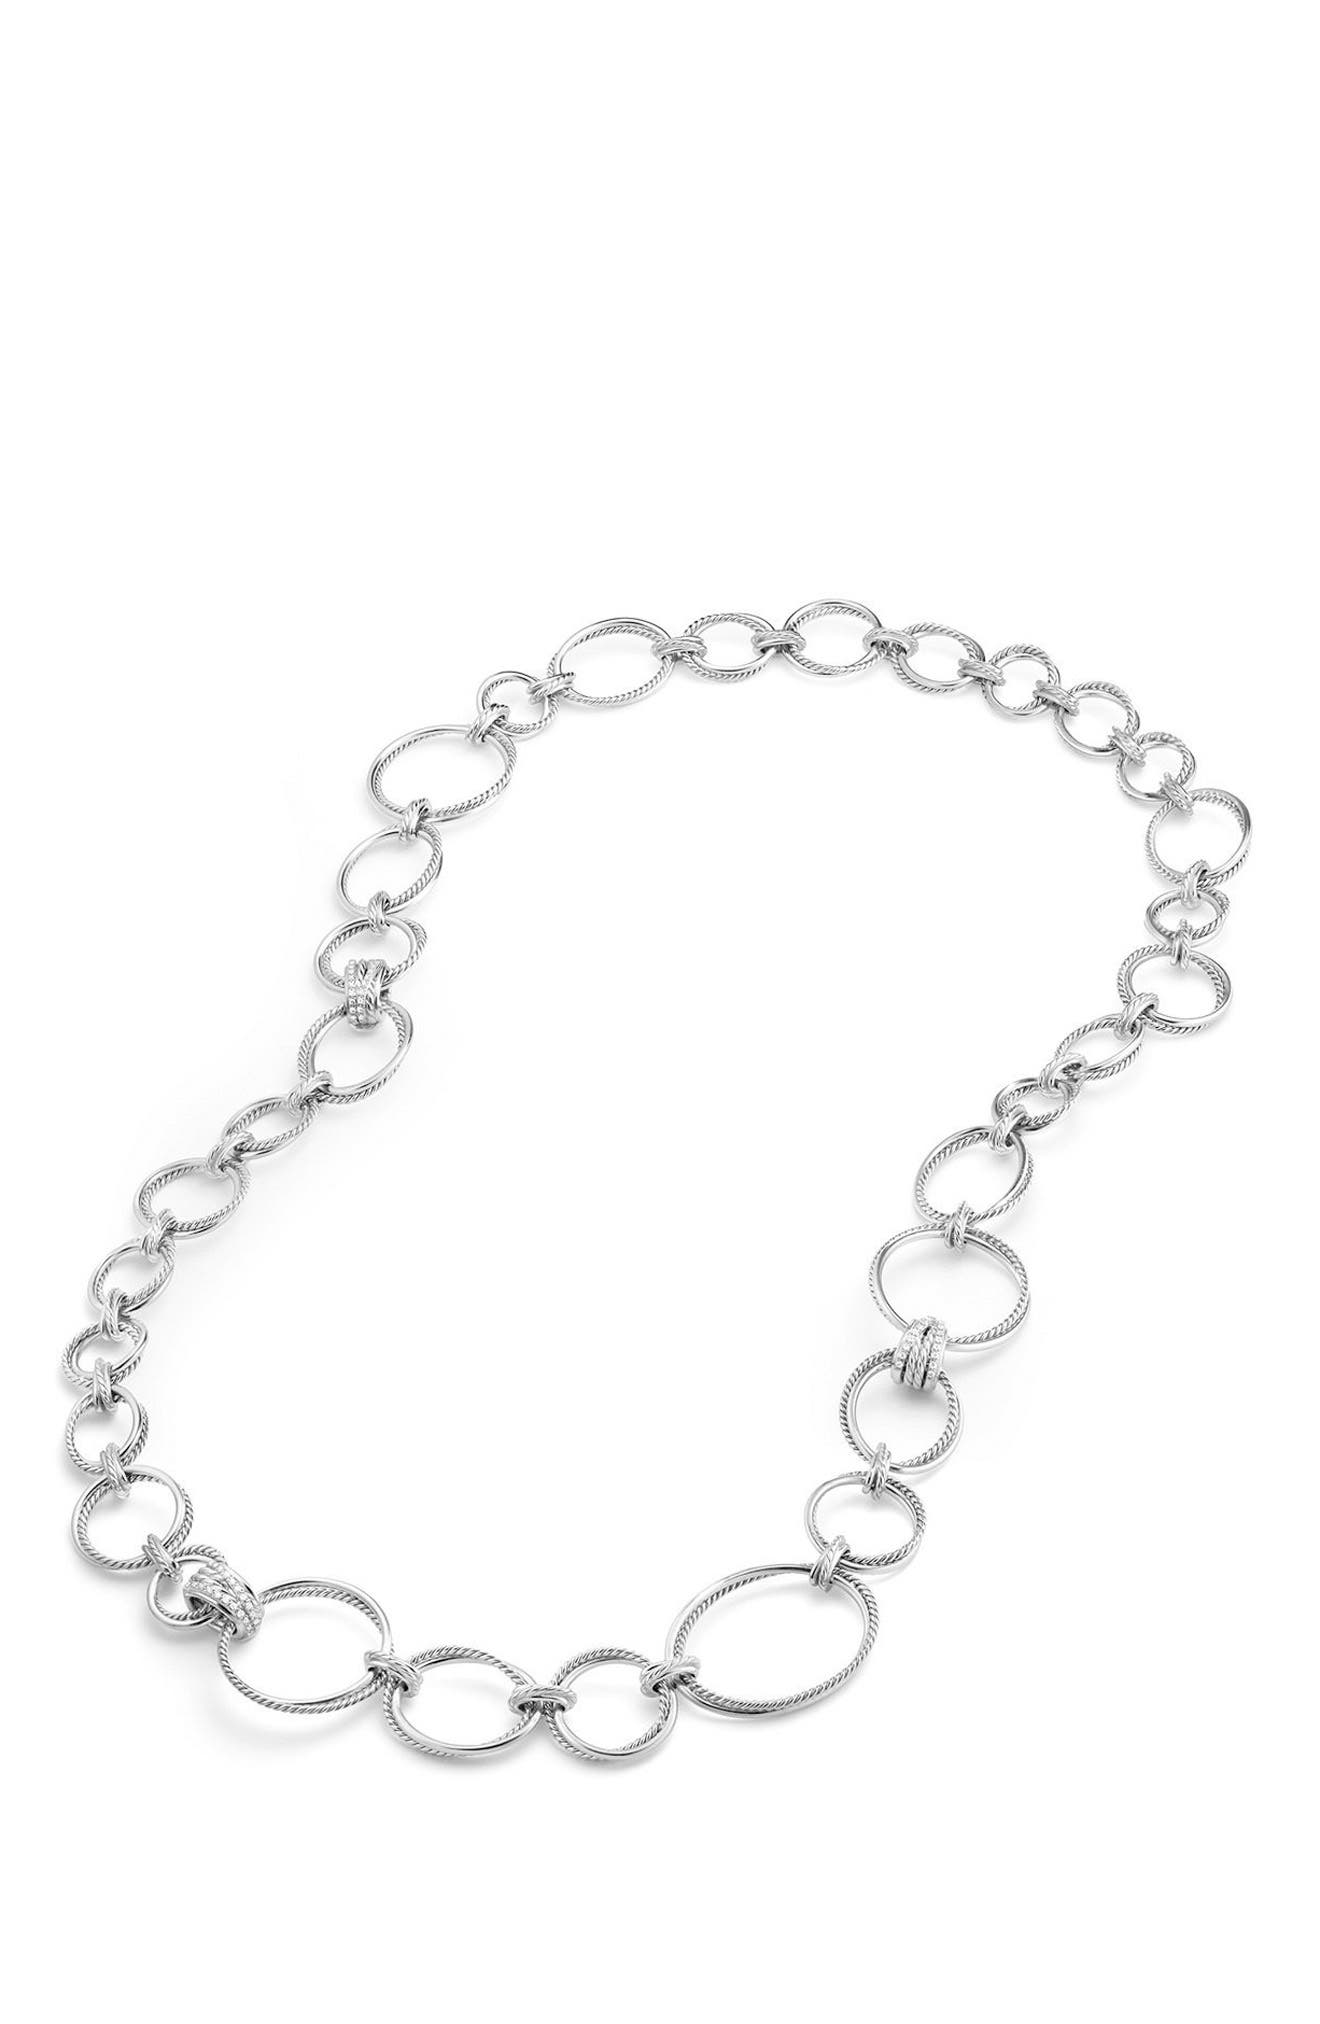 Crossover Convertible Statement Necklace with Diamonds,                             Alternate thumbnail 2, color,                             Silver